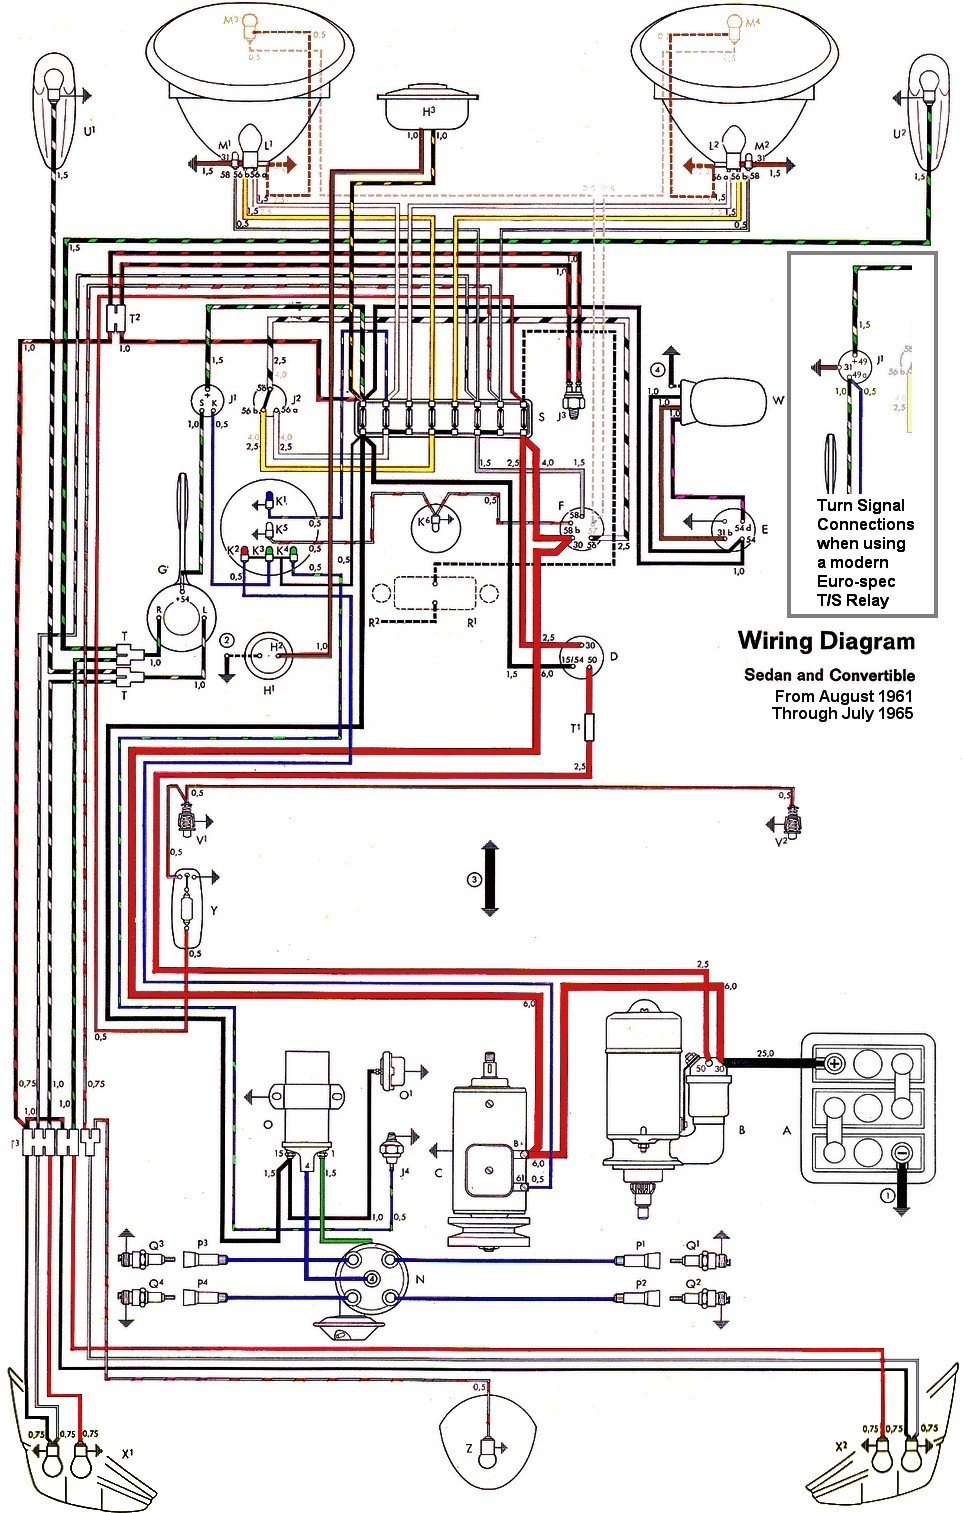 bug_62 65withinset wiring diagram vw beetle sedan and convertible 1961 1965 vw vw dune buggy wiring schematic at webbmarketing.co